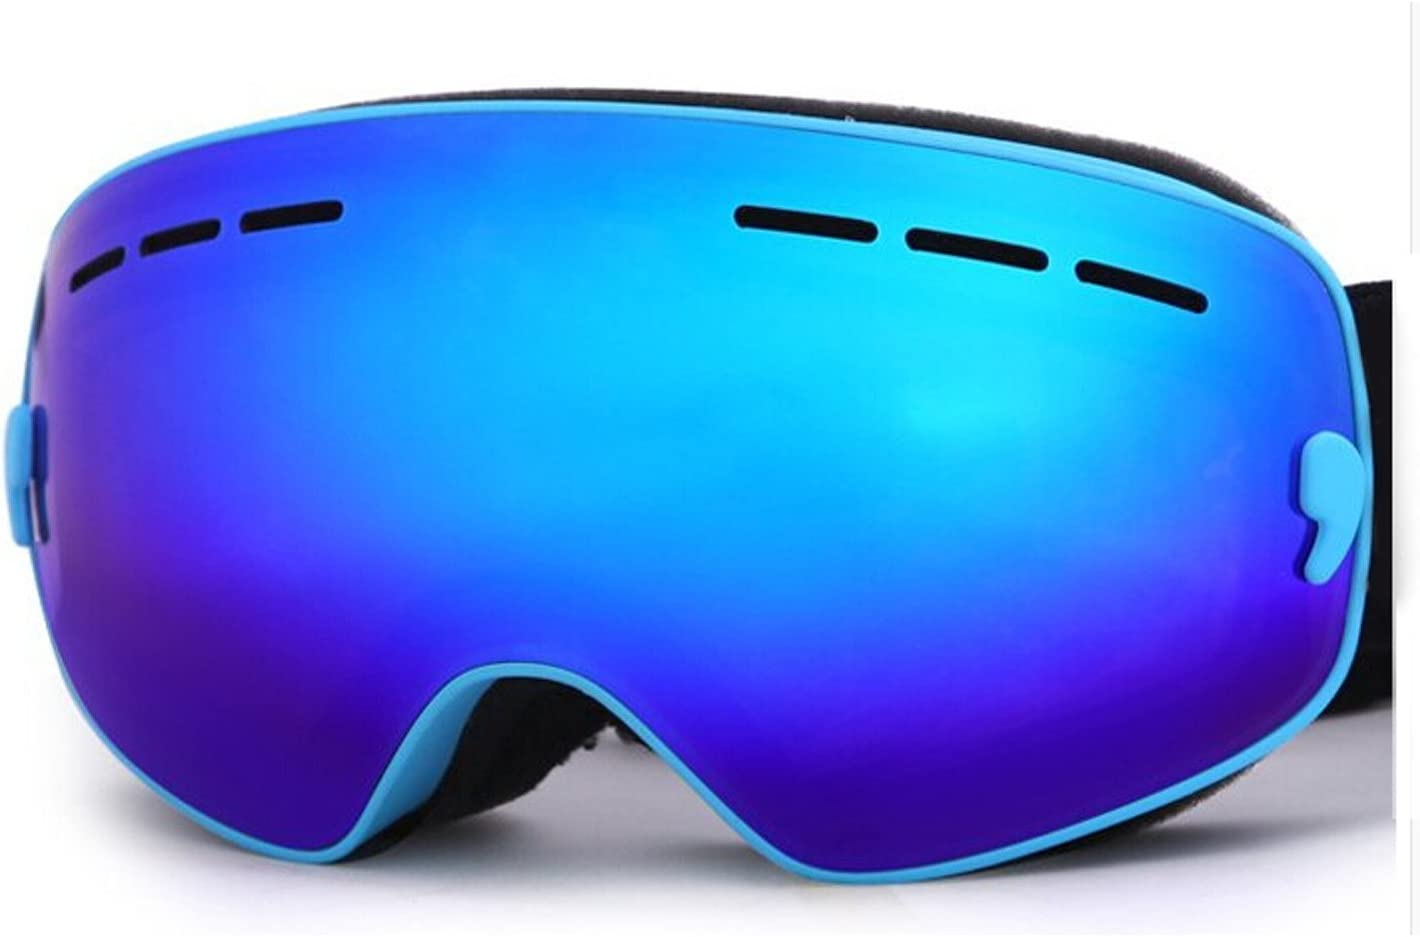 HiCool Ski Goggles, No Border Extra Large Viewing Skiing Goggles with Imported Italian Lens - Anti-Fog UV Protection Detachable Wide Spherical Goggle Lens